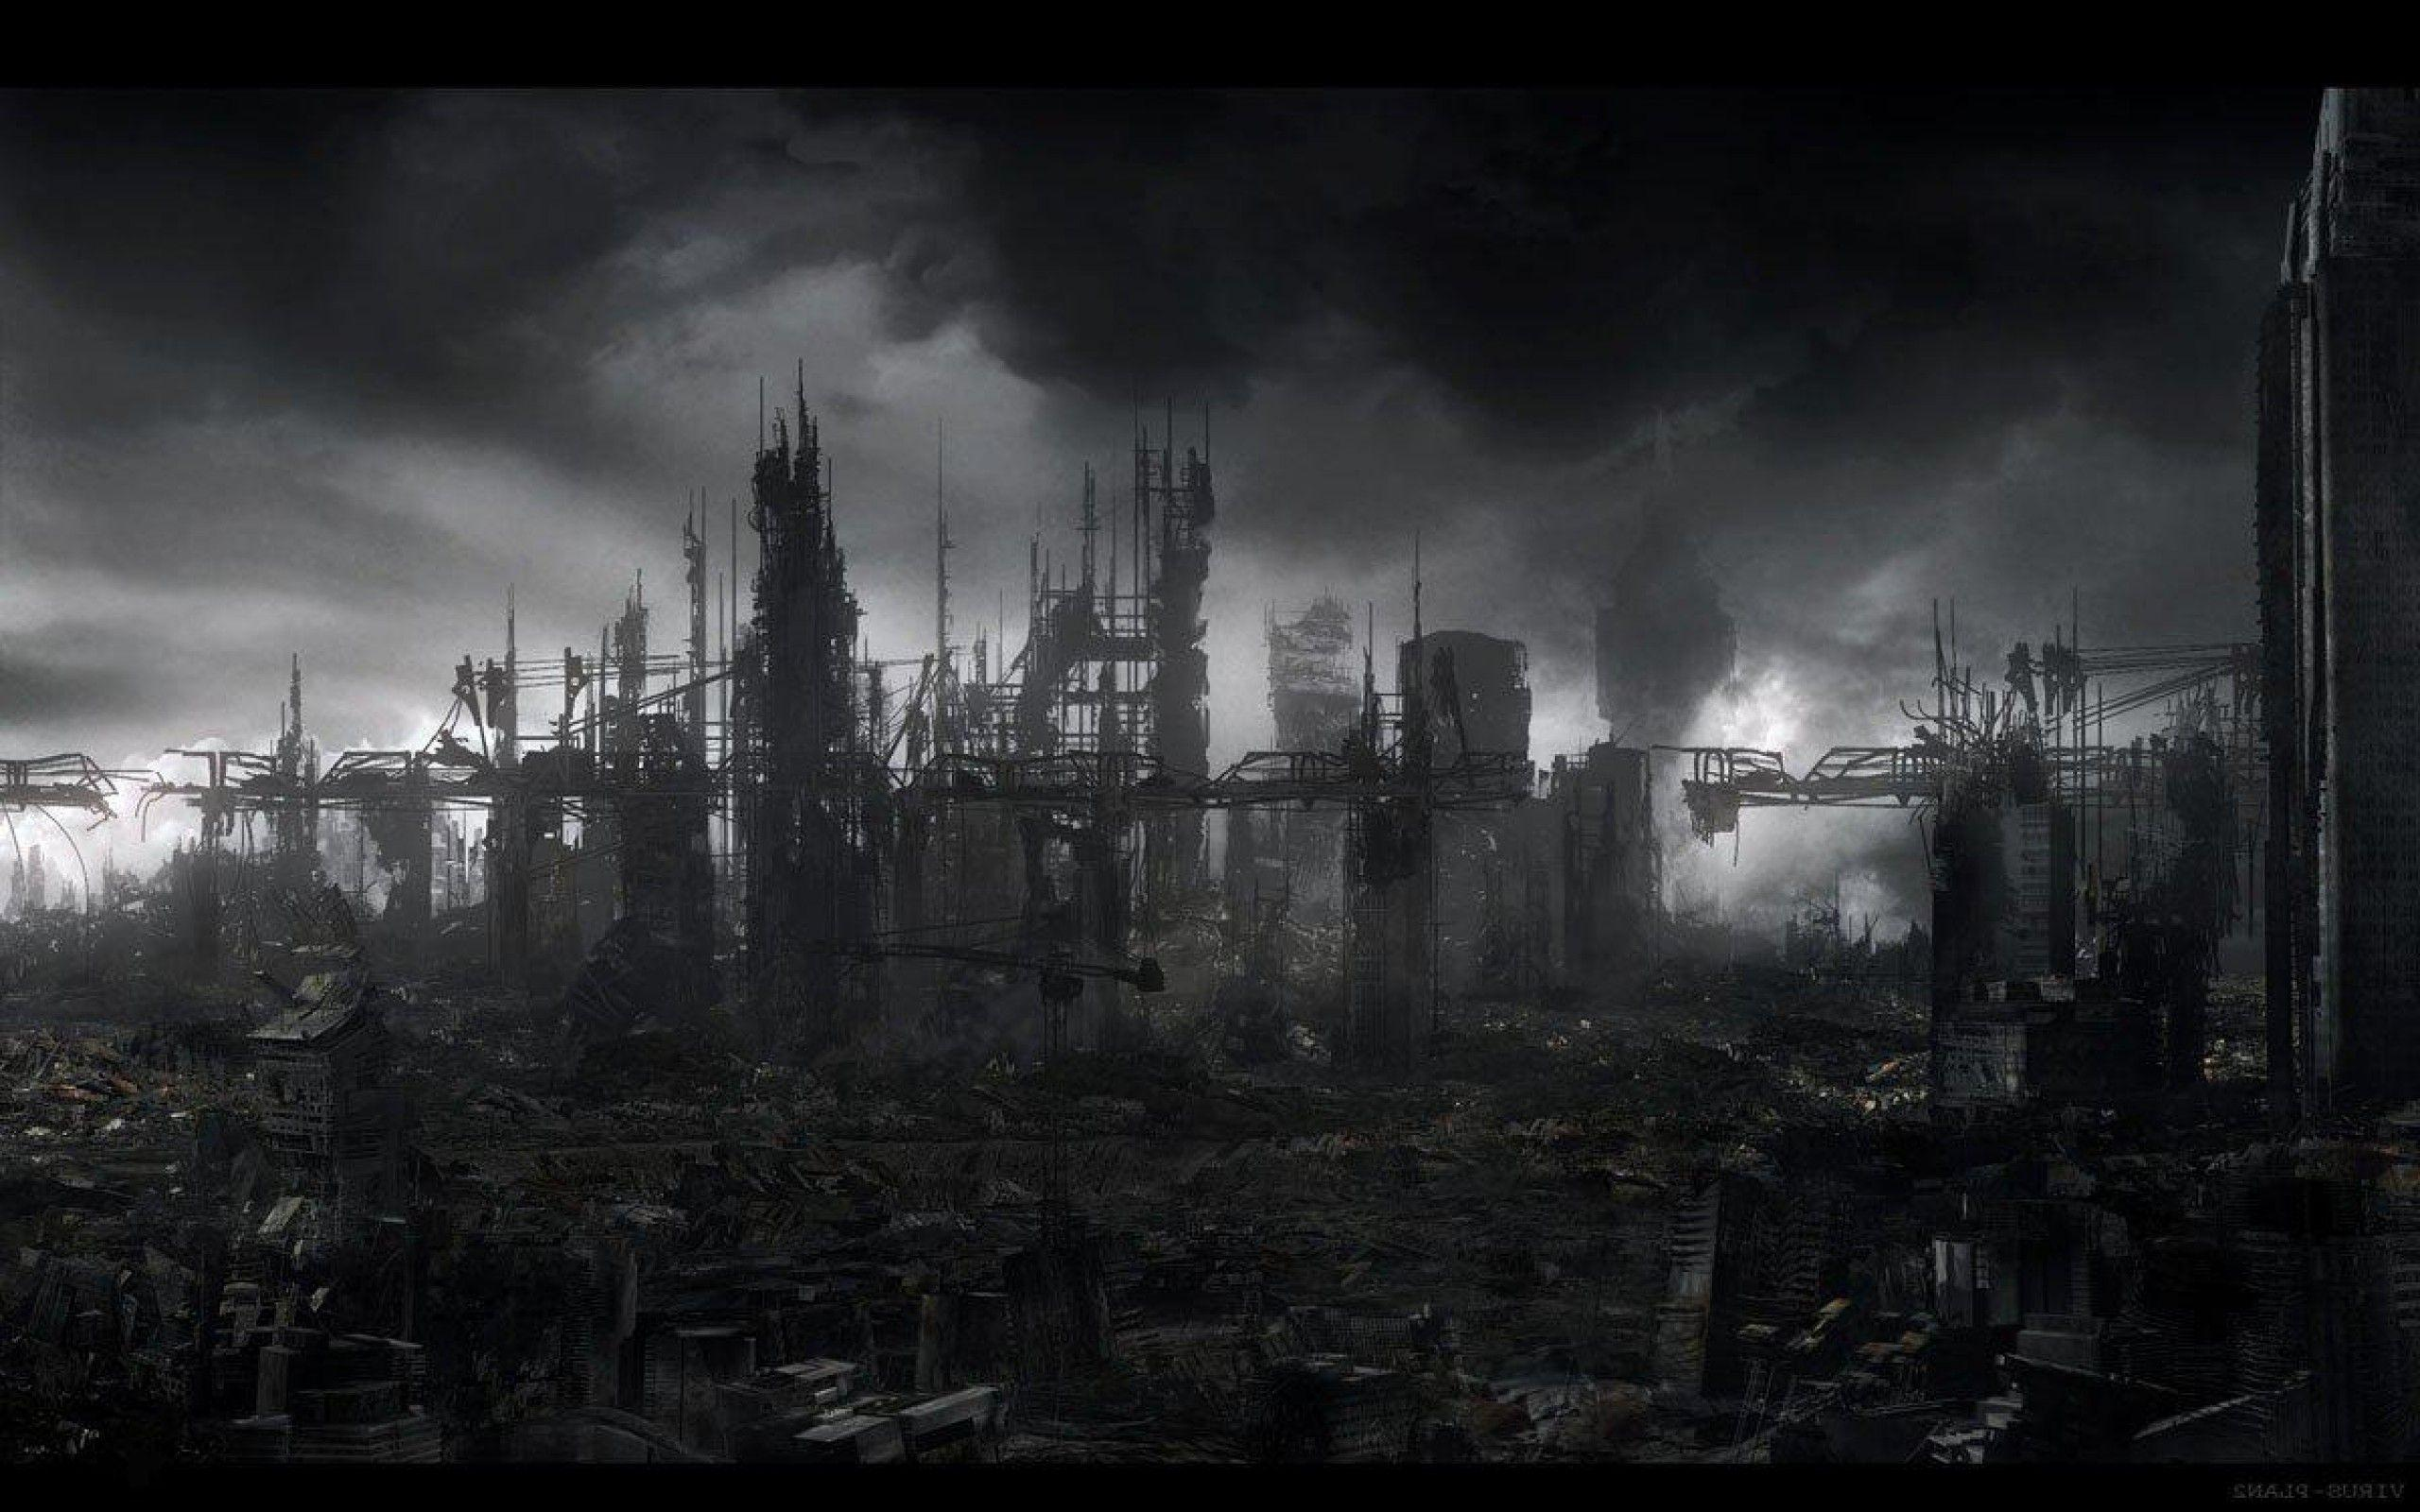 Image For > Destroyed City Wallpapers 1920x1080